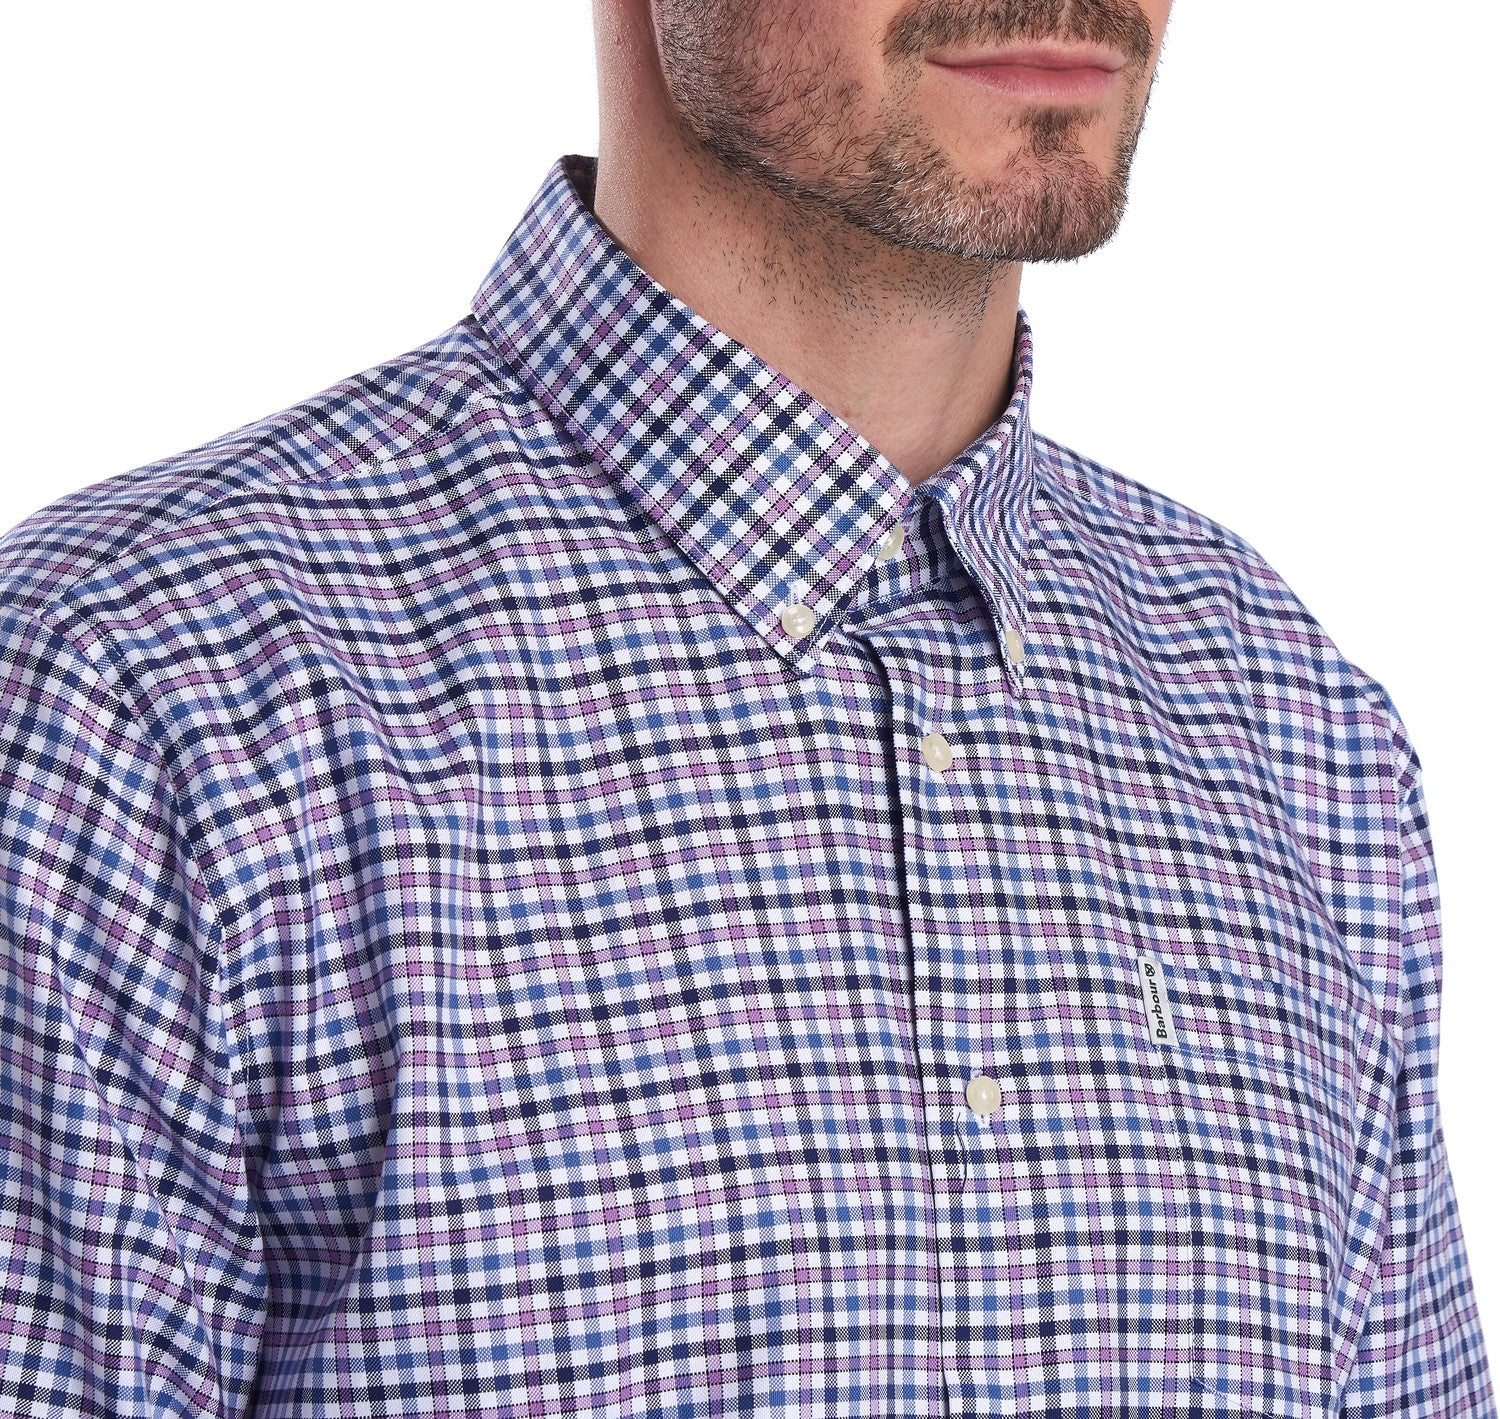 Barbour Agden Regular Fit Shirt for Men in Heather